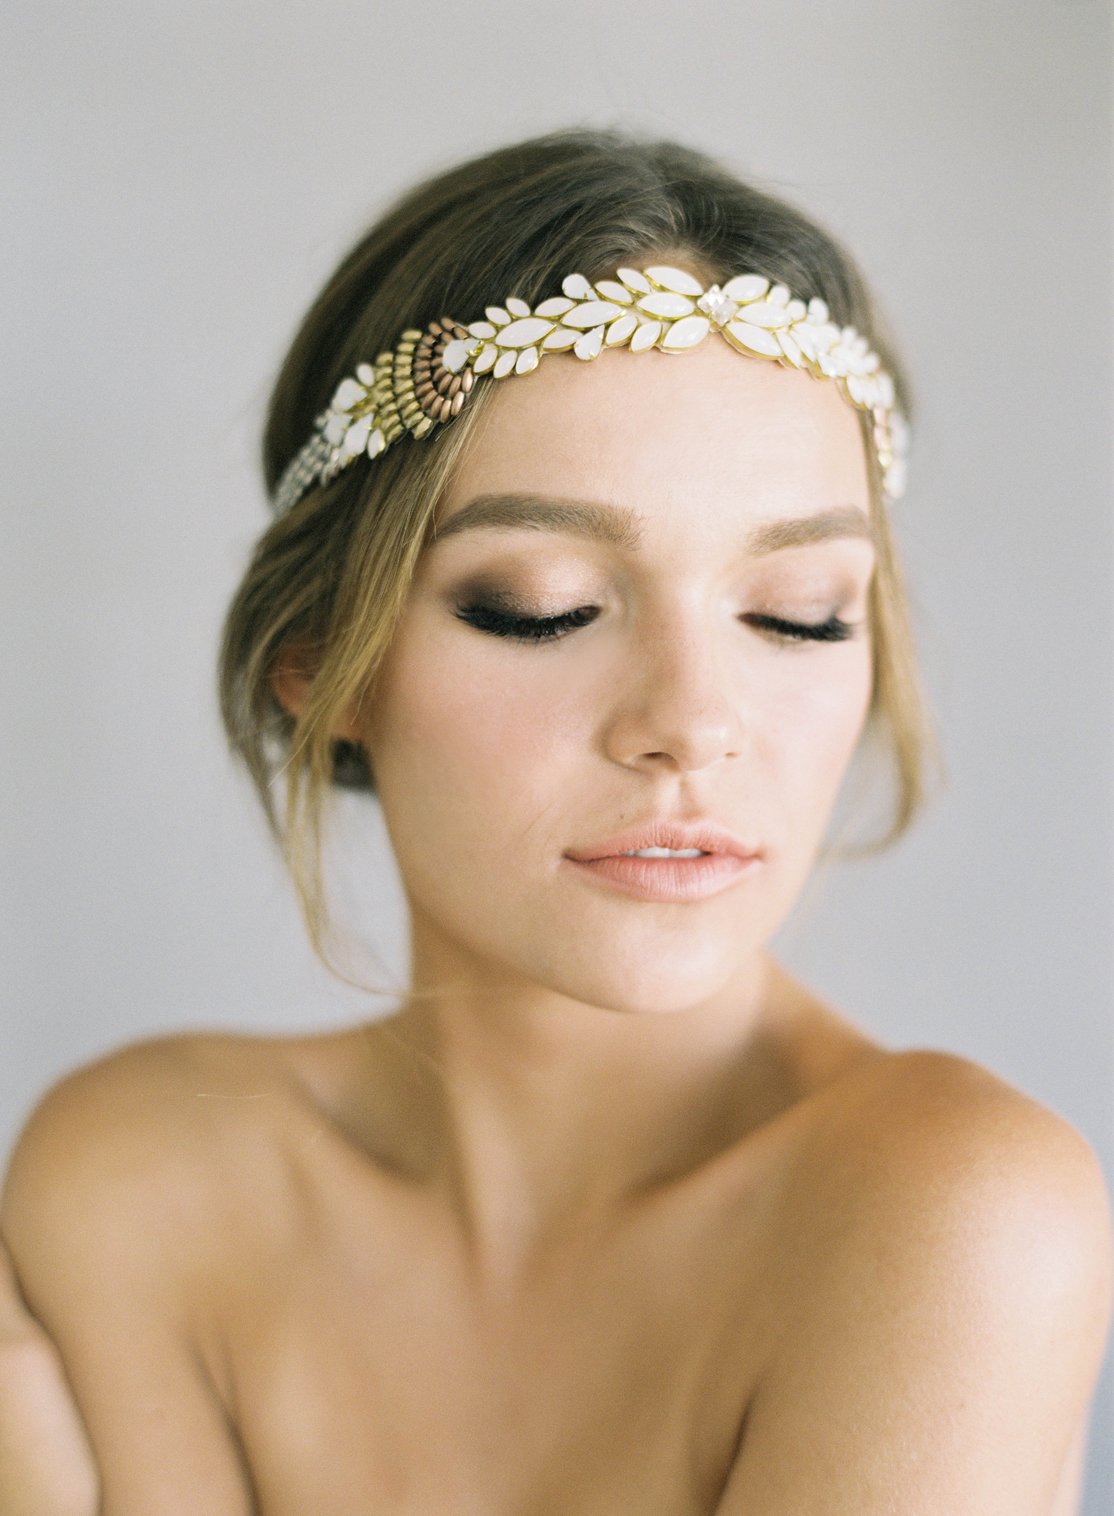 Hushed+Commotion,+Jen+Huang+2017,+Paloma,+headpiece+with+ombre+beading+in+ivory,+gold+and+rose+gold.jpg